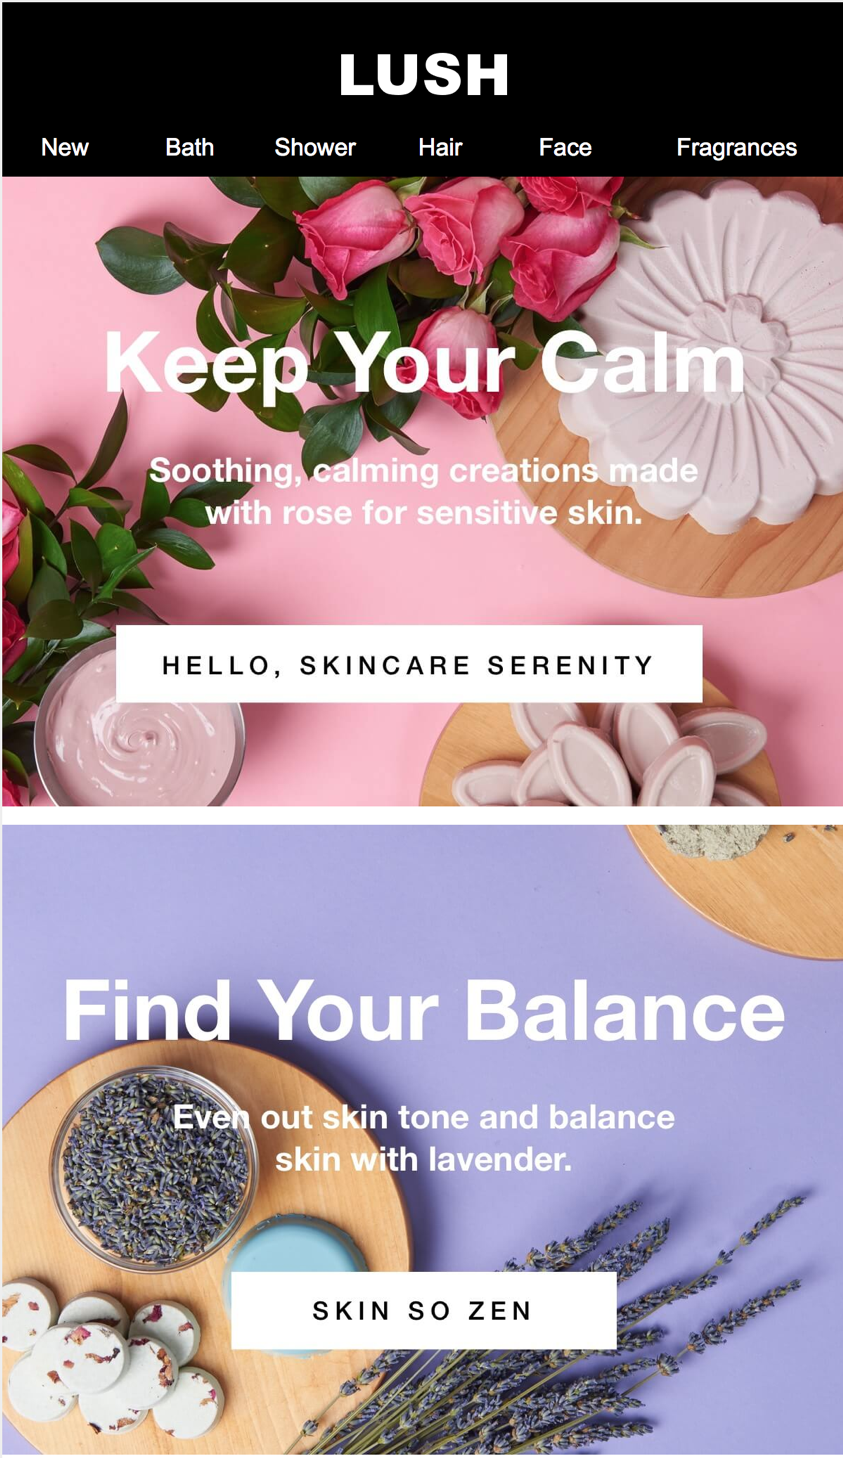 A fragment of newsletter sent by Lush introducing new products through benefits (and possible segments)